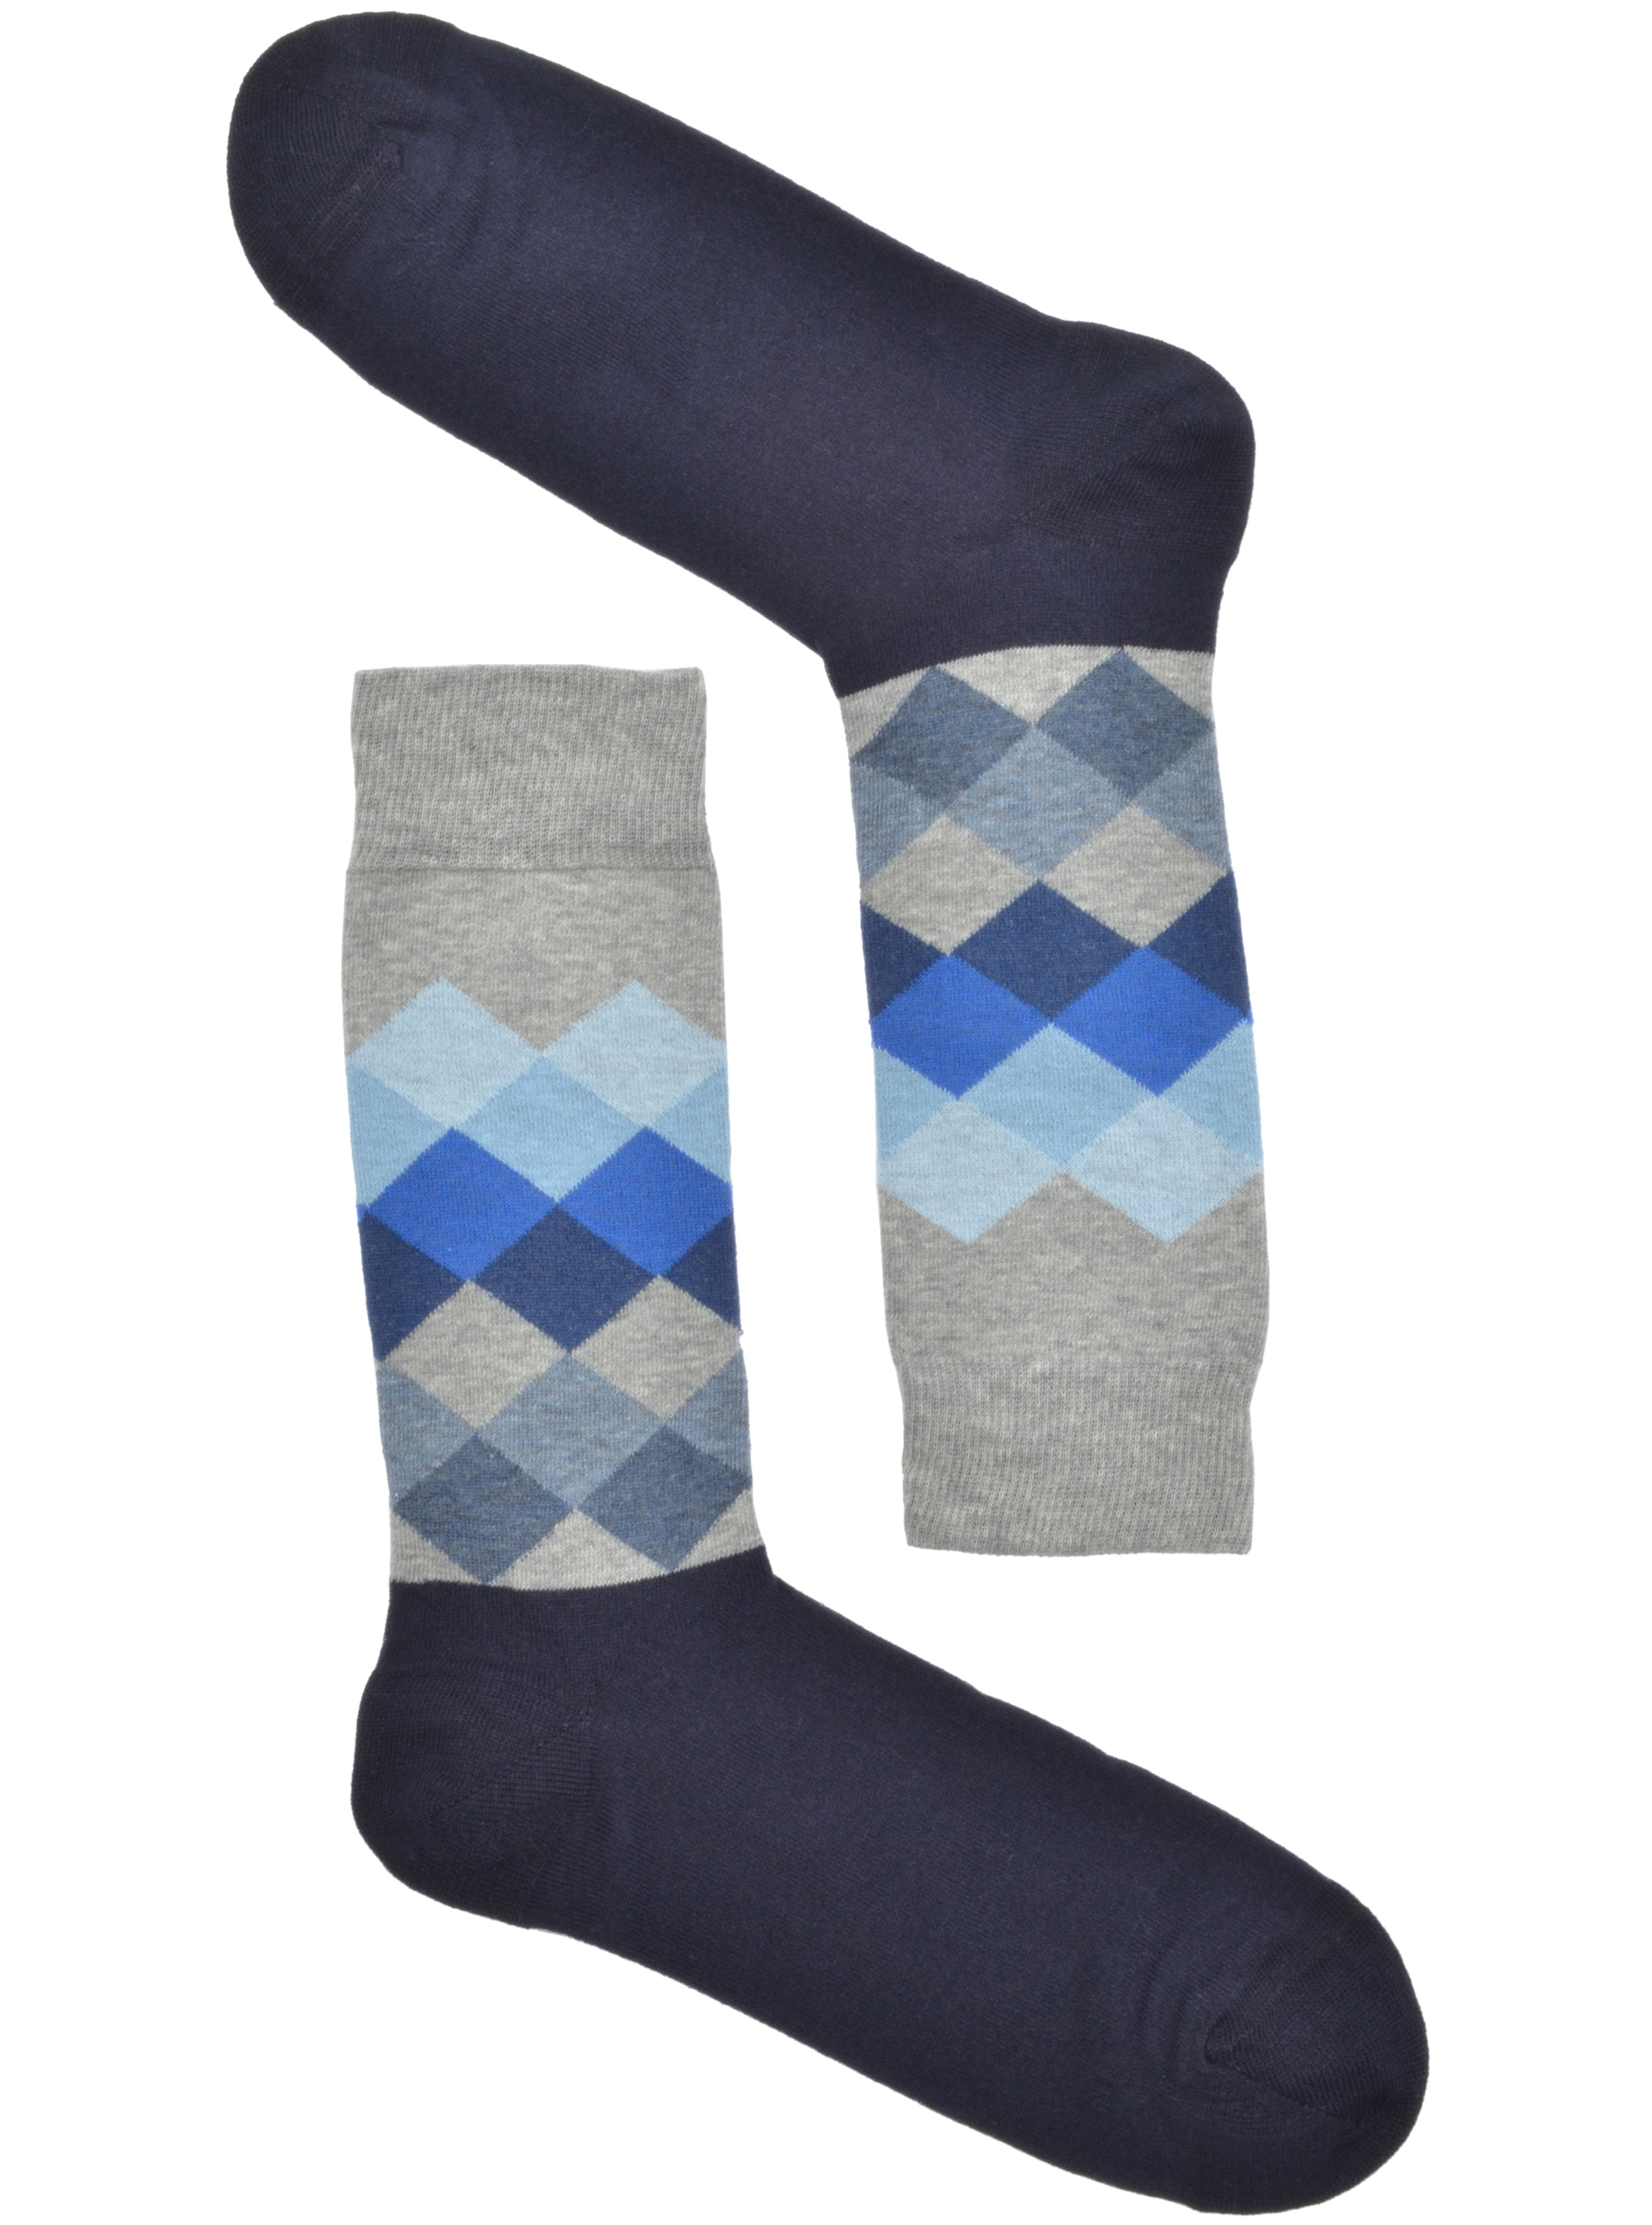 M. Grey-Navy Argyle - Spazio